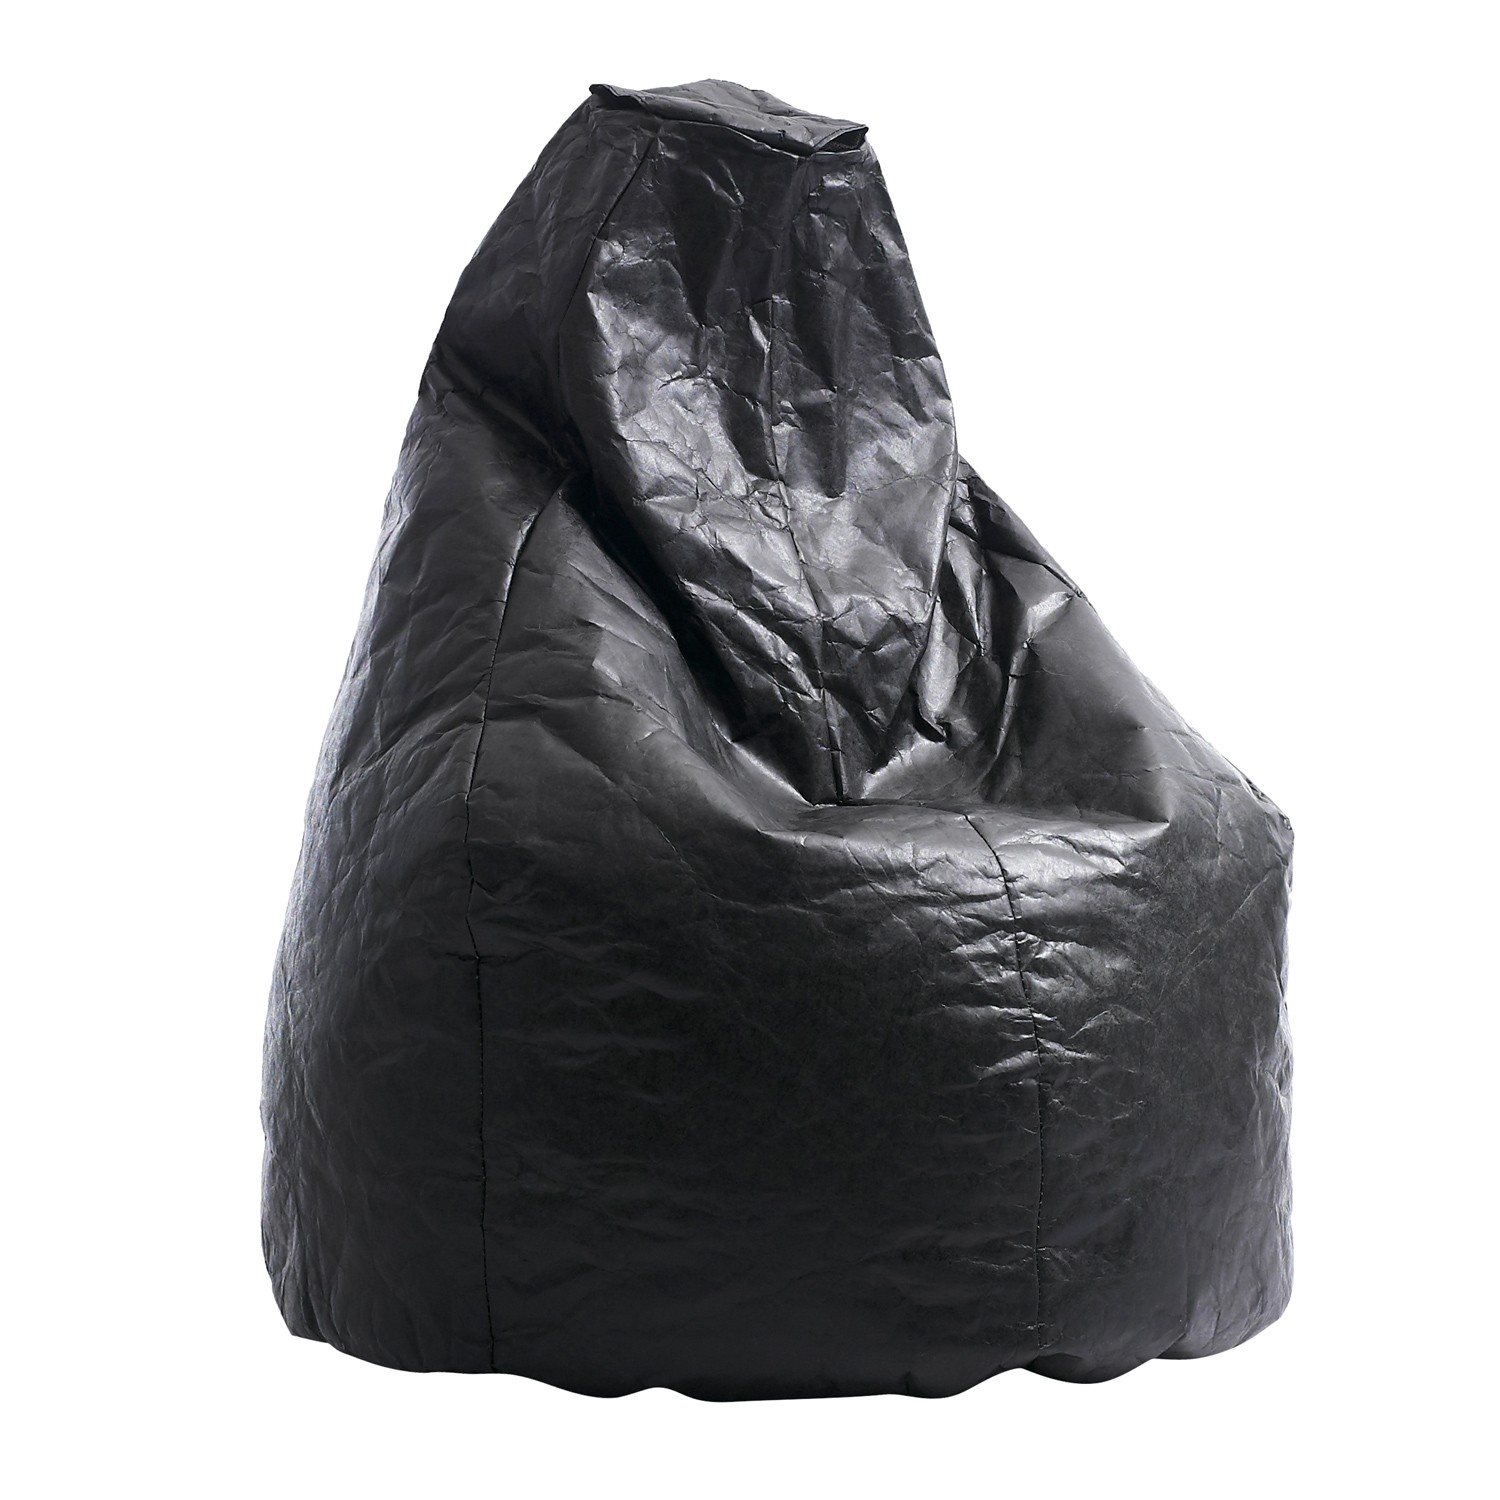 Sack Pouffe, gallery image 1